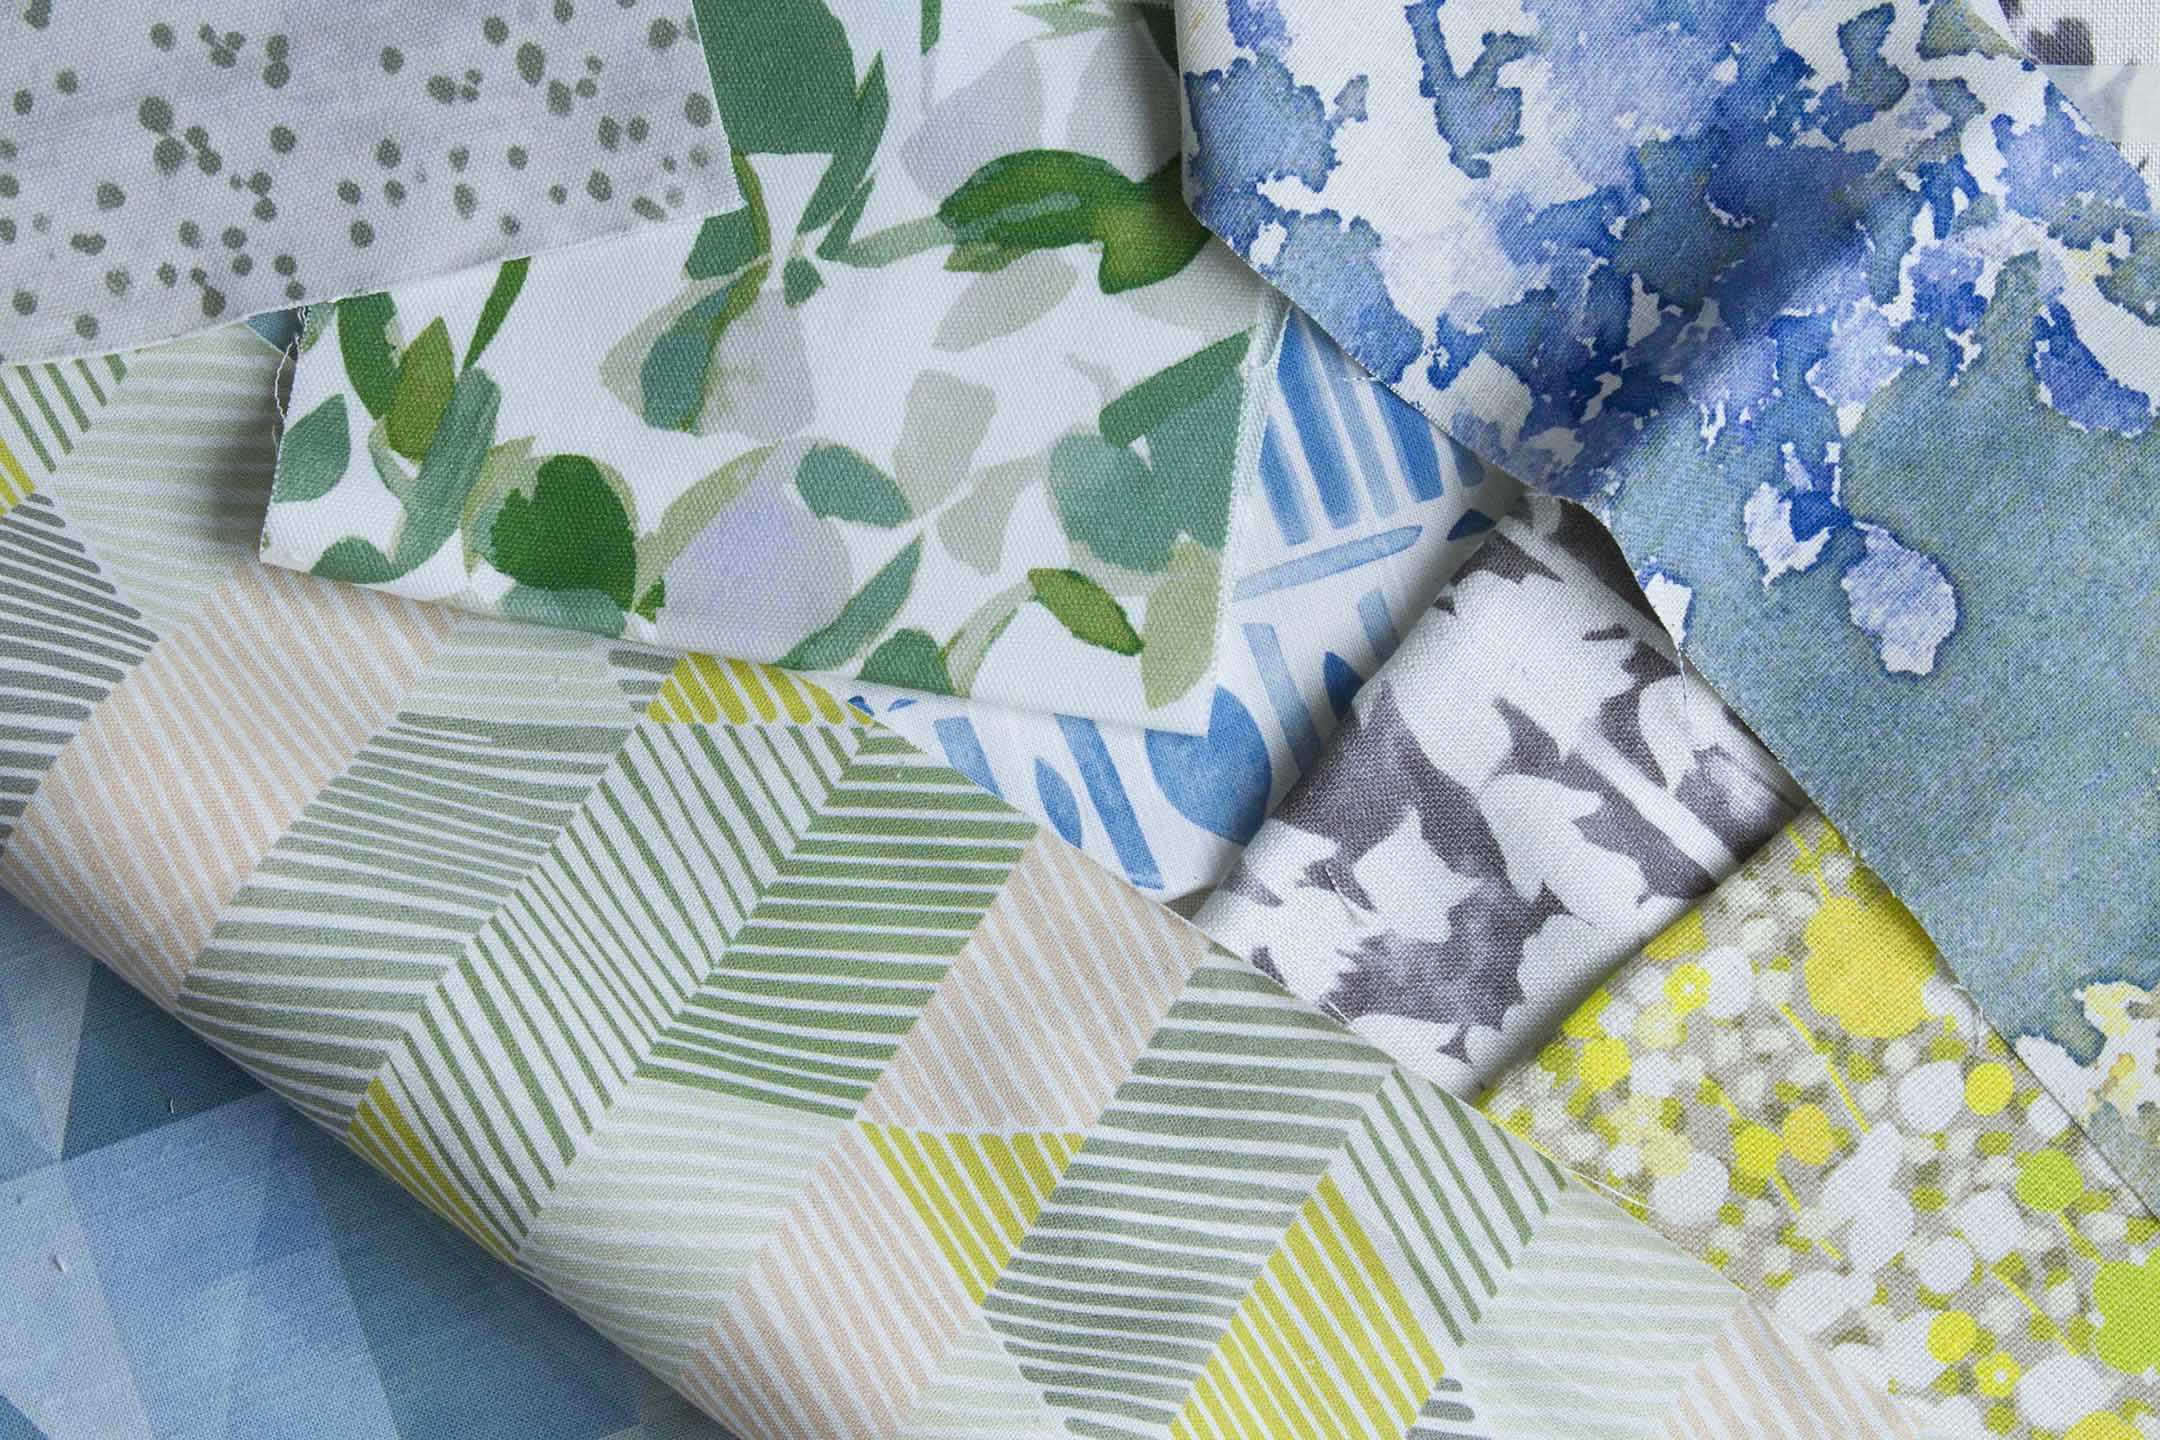 imogen-heath-interior-fabrics-4.jpg